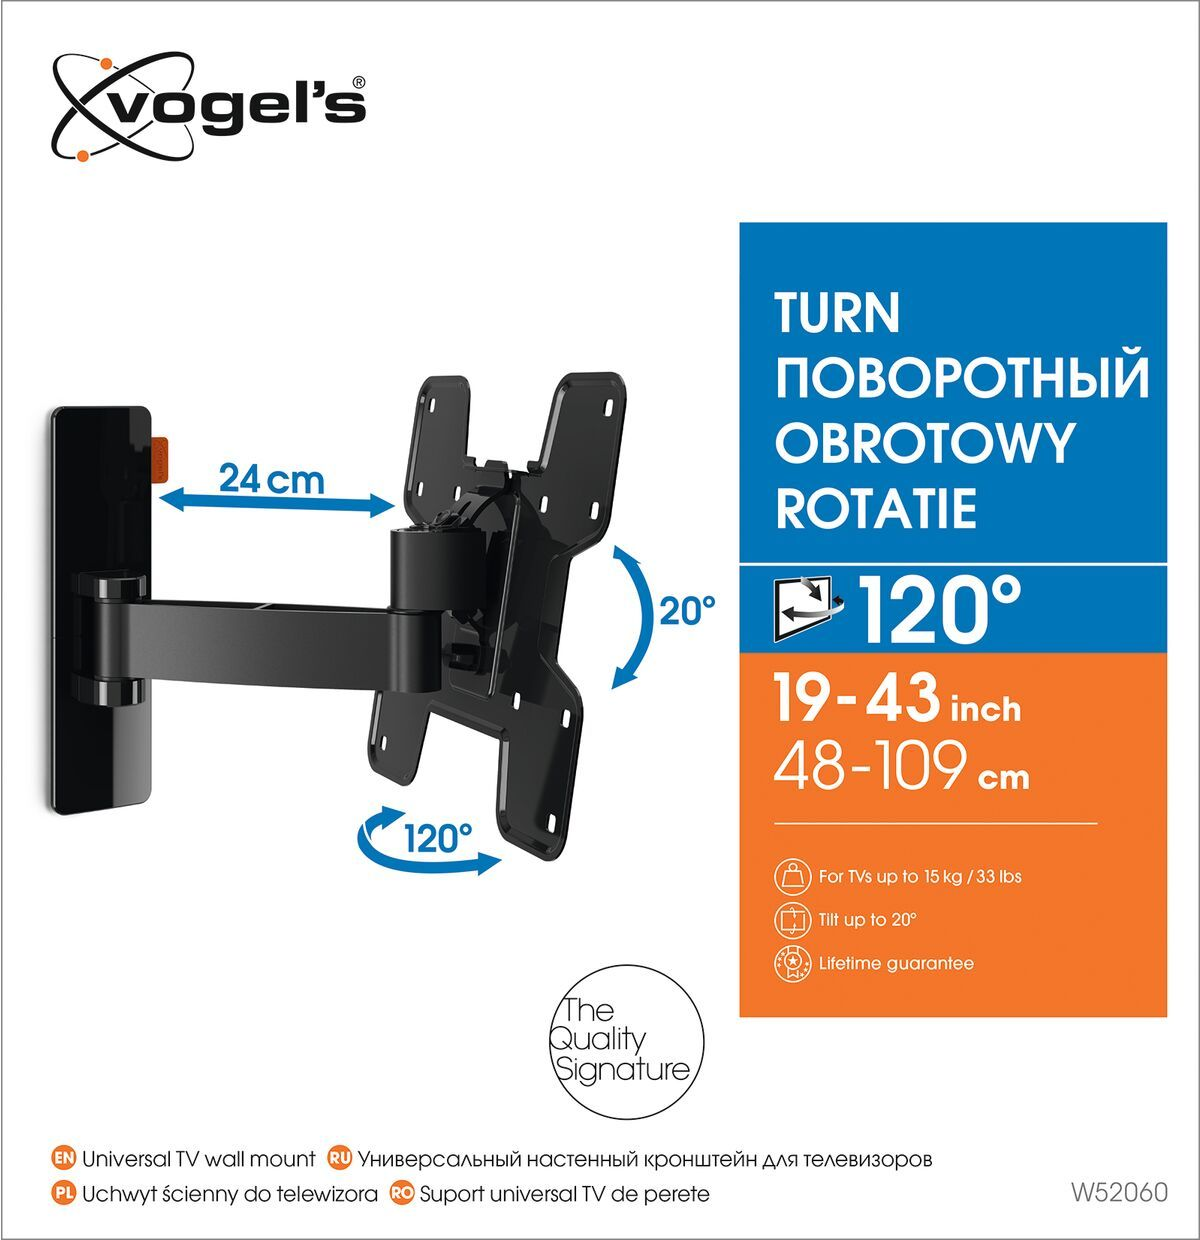 Vogel's W52060 Full-Motion TV Wall Mount (black) - Suitable for 19 up to 43 inch TVs - Motion (up to 120°) - Tilt -10°/+10° - Packaging front